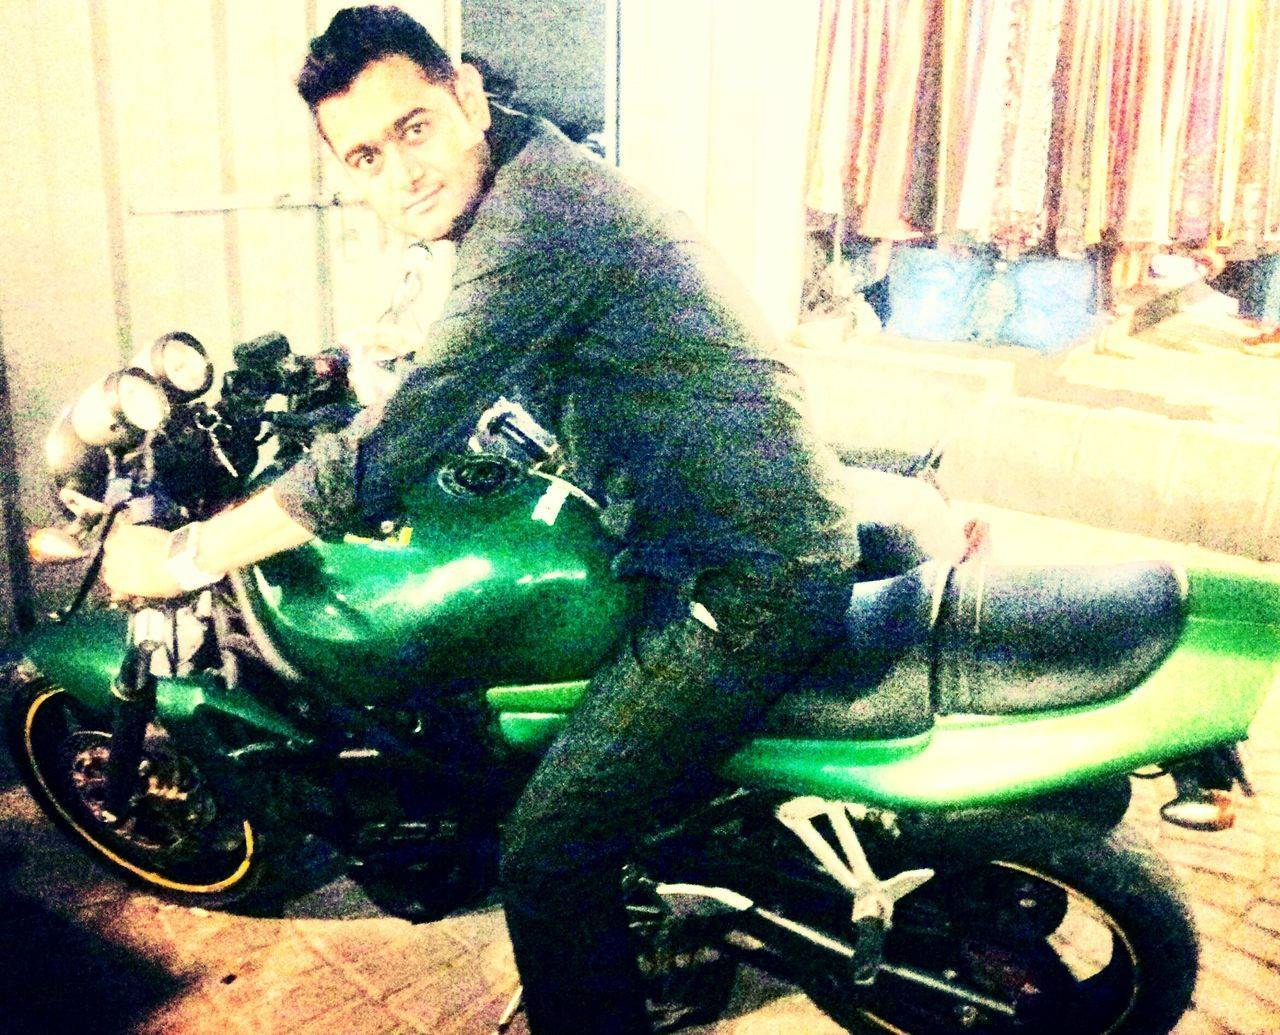 Riding Bike Sportsbike That's Me Bikers